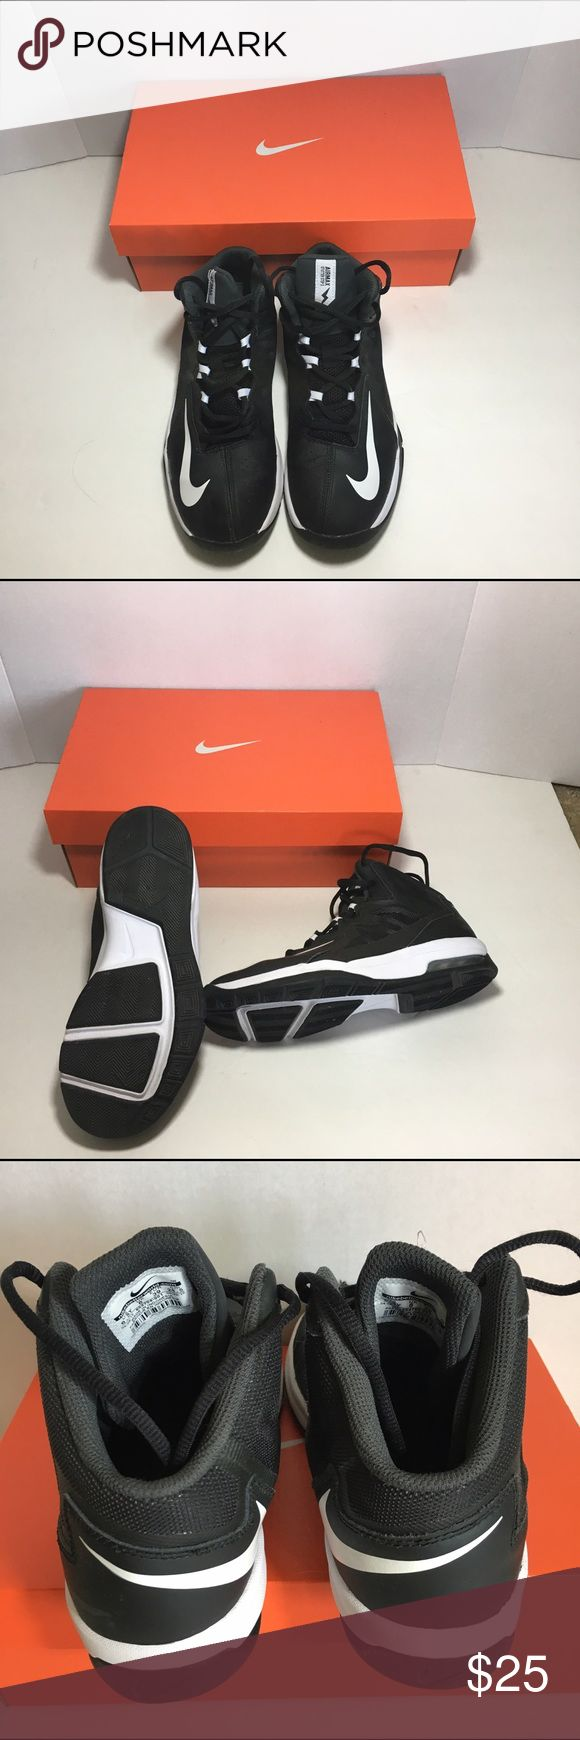 Nike youth size 6.5 basketball shoes These are in great condition only worn for a few months on the court. Youth size 6.5. Color is black and white. Come in the original box as shown Nike Shoes Sneakers